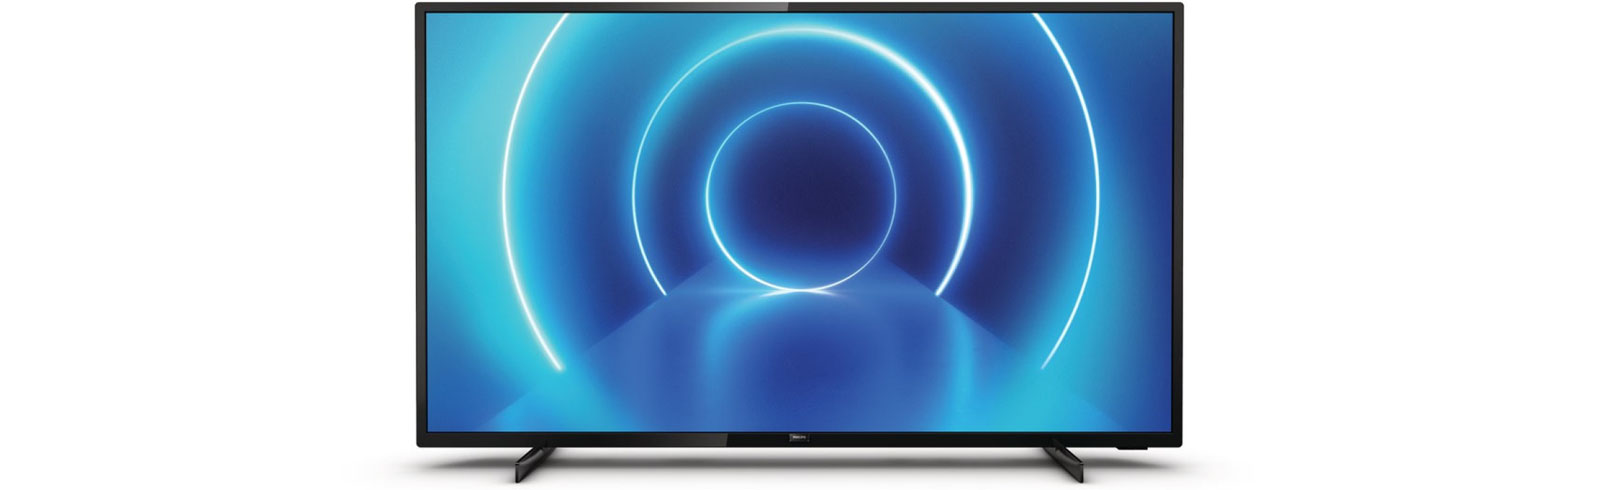 Philips 7505/7555 4K TV series specifications and features